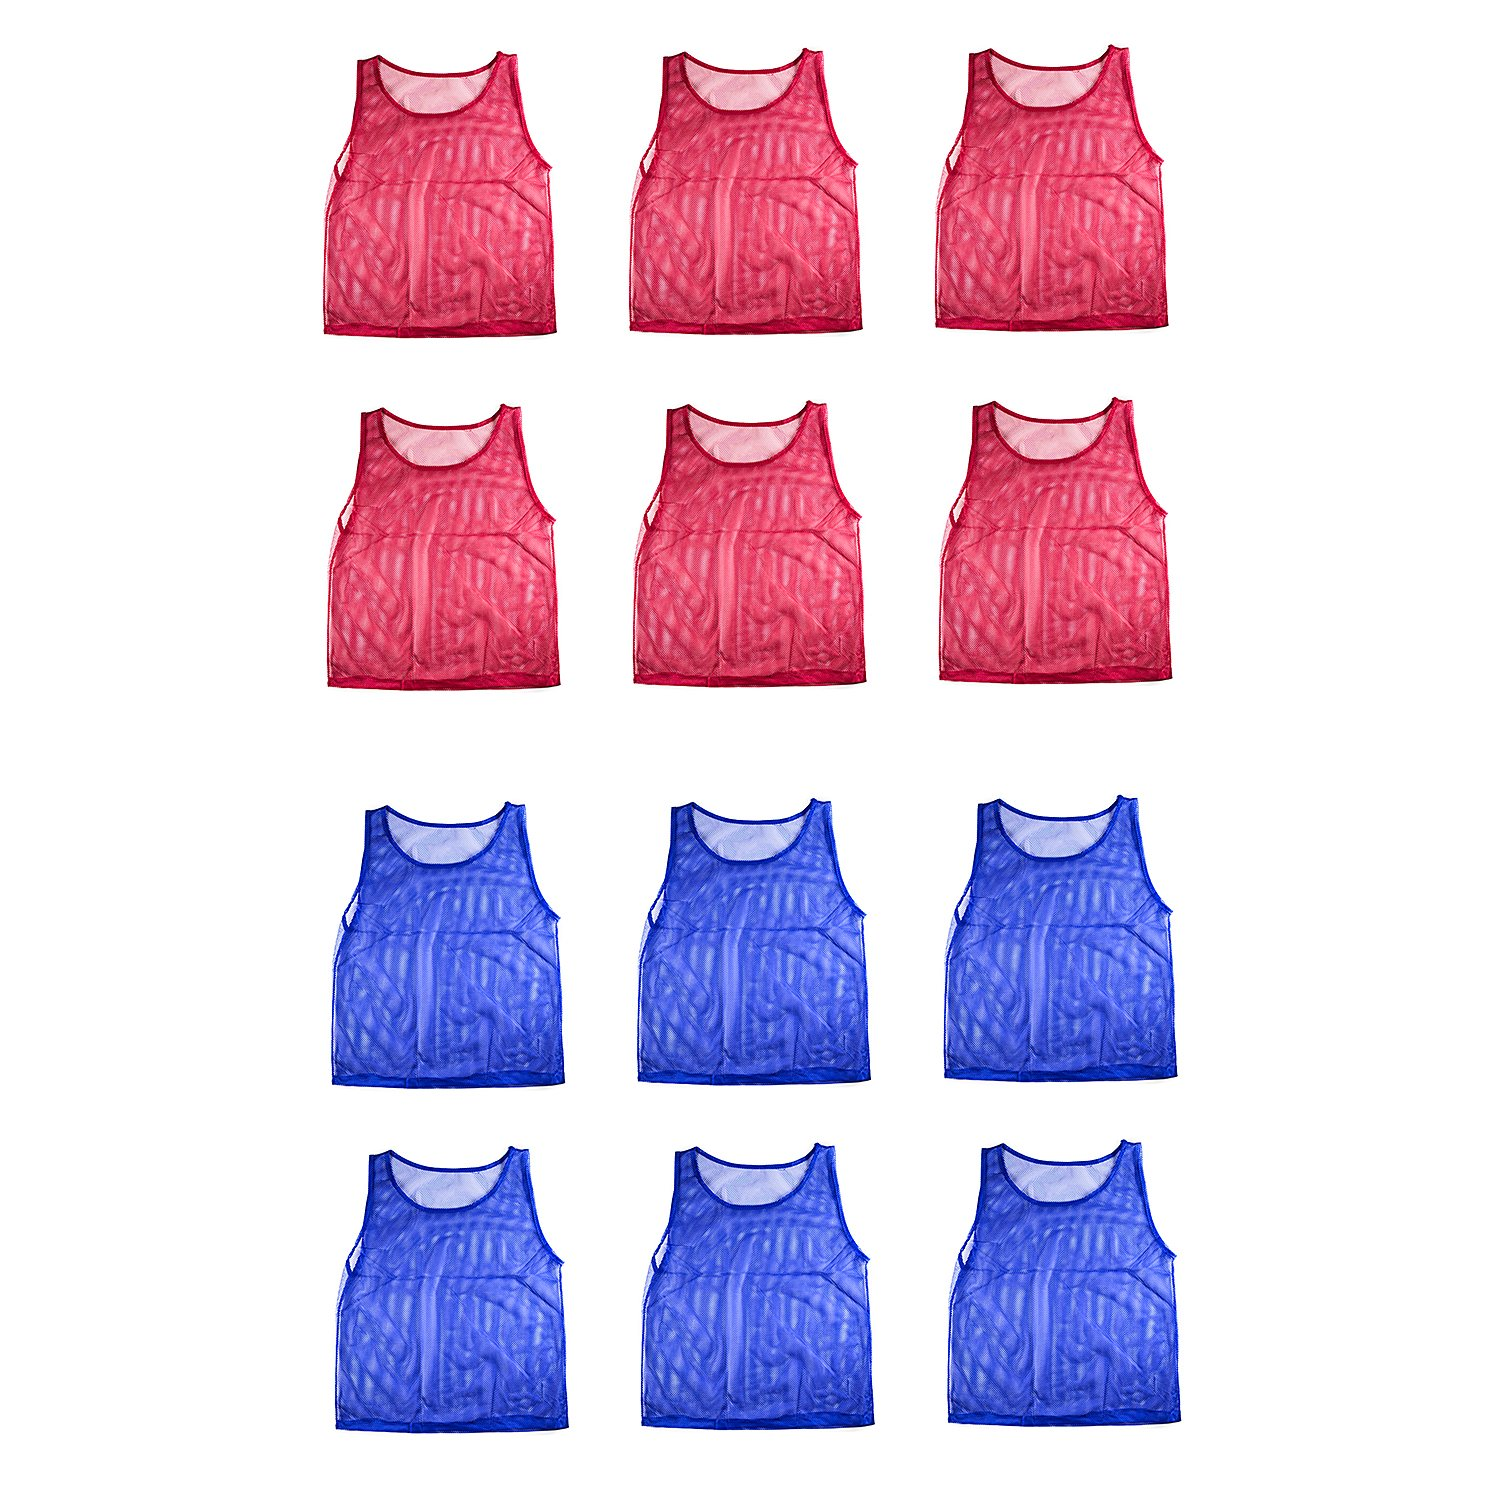 Nylon Mesh Scrimmage Team Practice Vests Pinnies Jerseys for Children Youth Sports Basketball, Soccer, Football, Volleyball (12 Jerseys) by Super Z Outlet (Image #1)